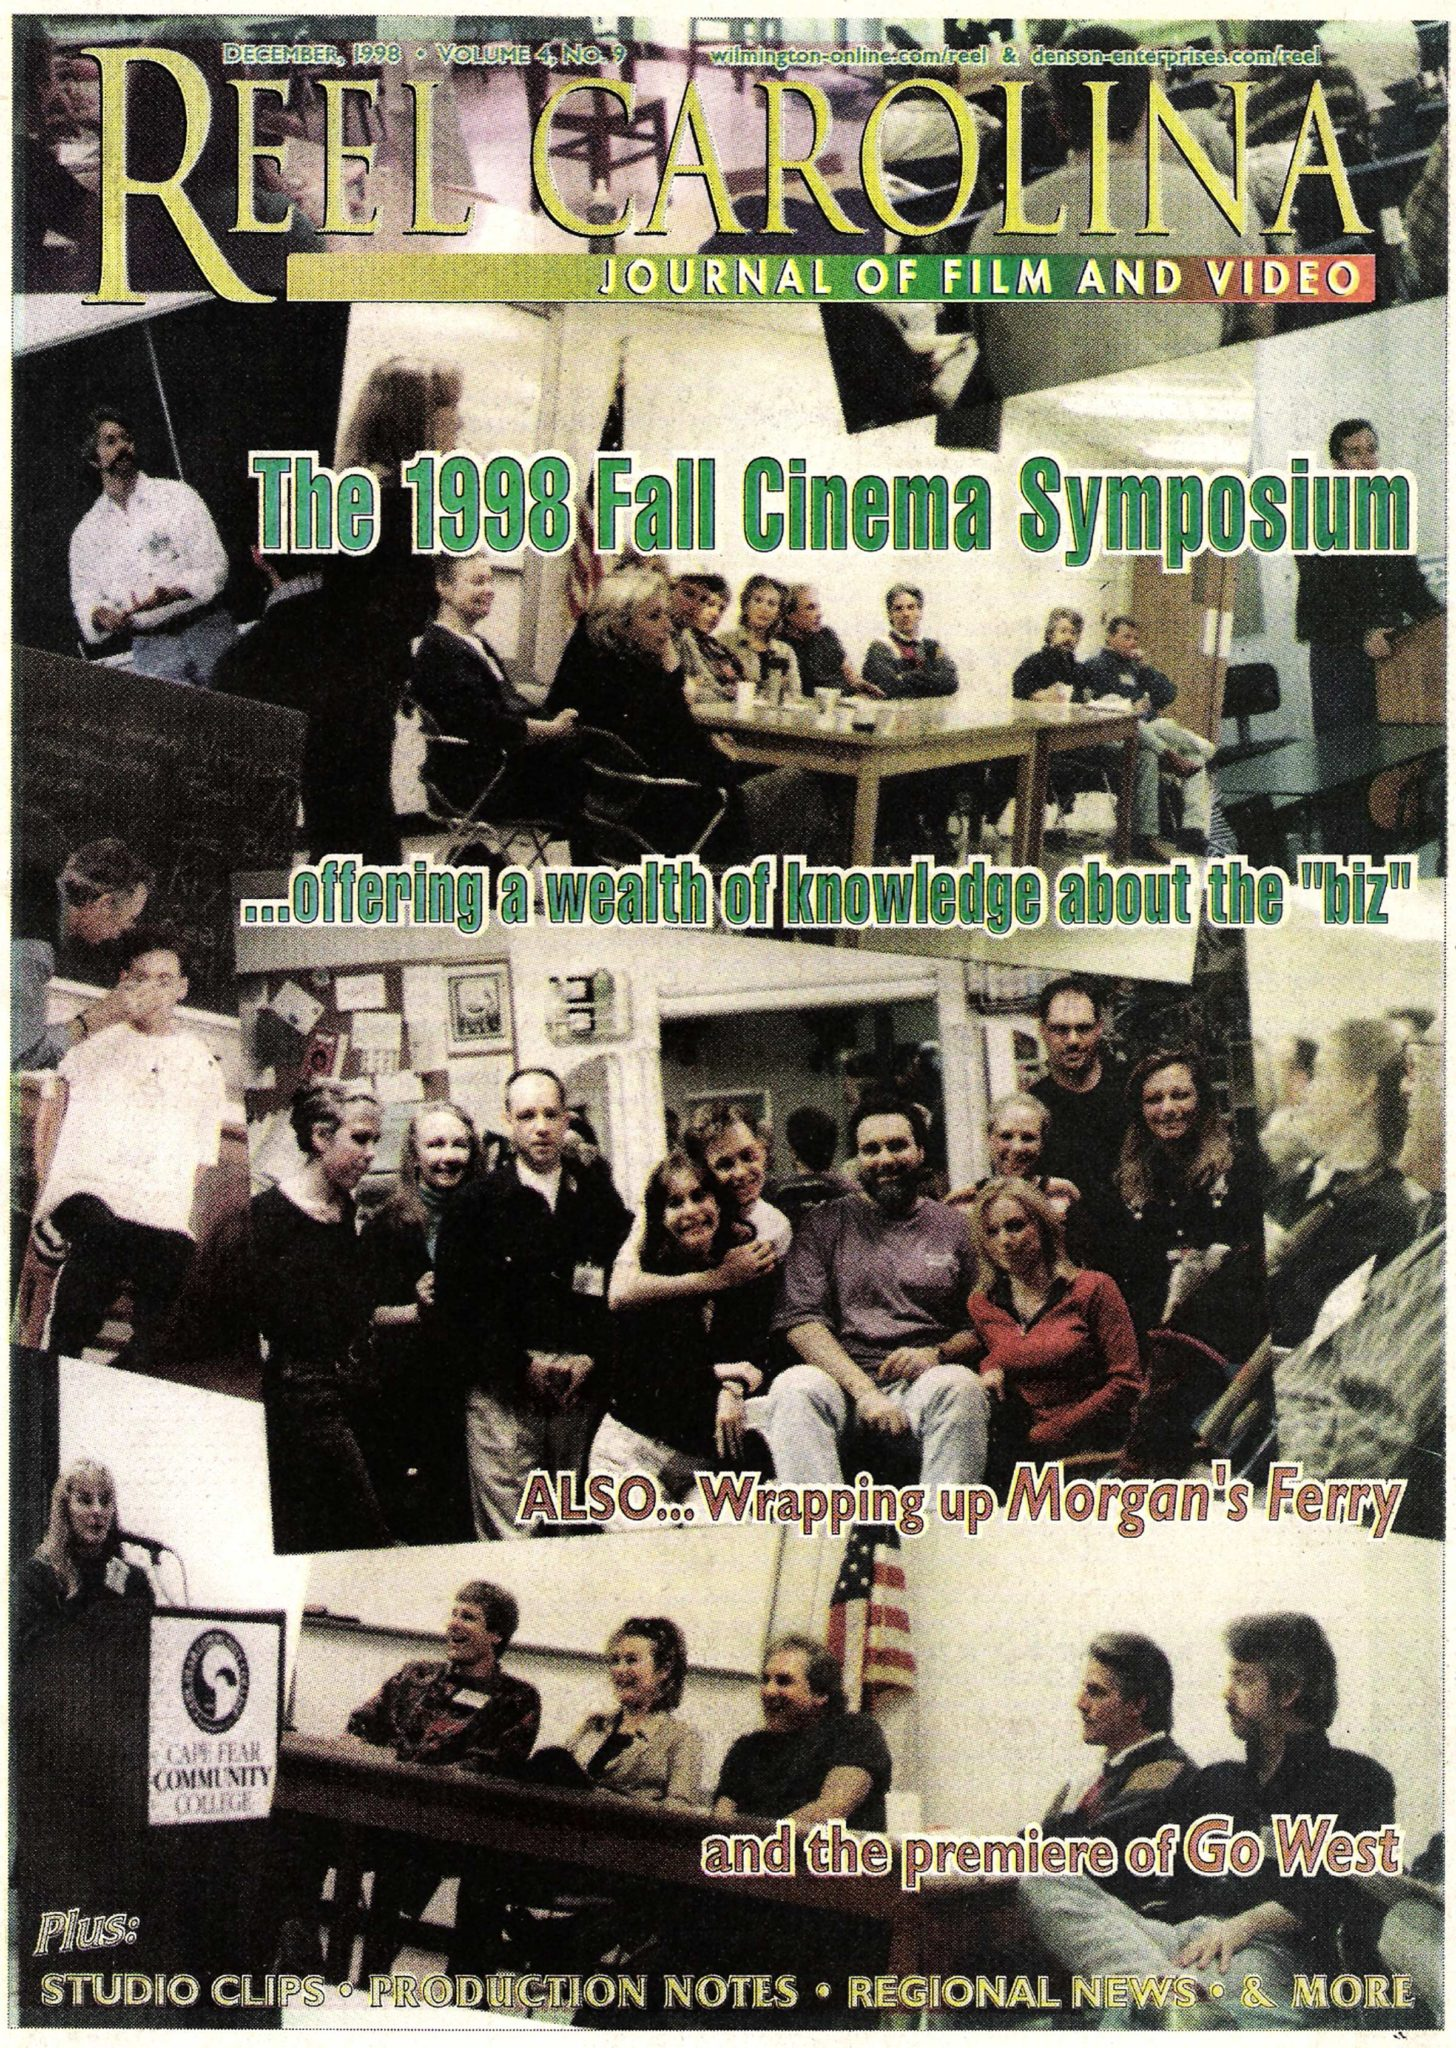 1999 Fall Cinema Symposium - Wilmington, NC